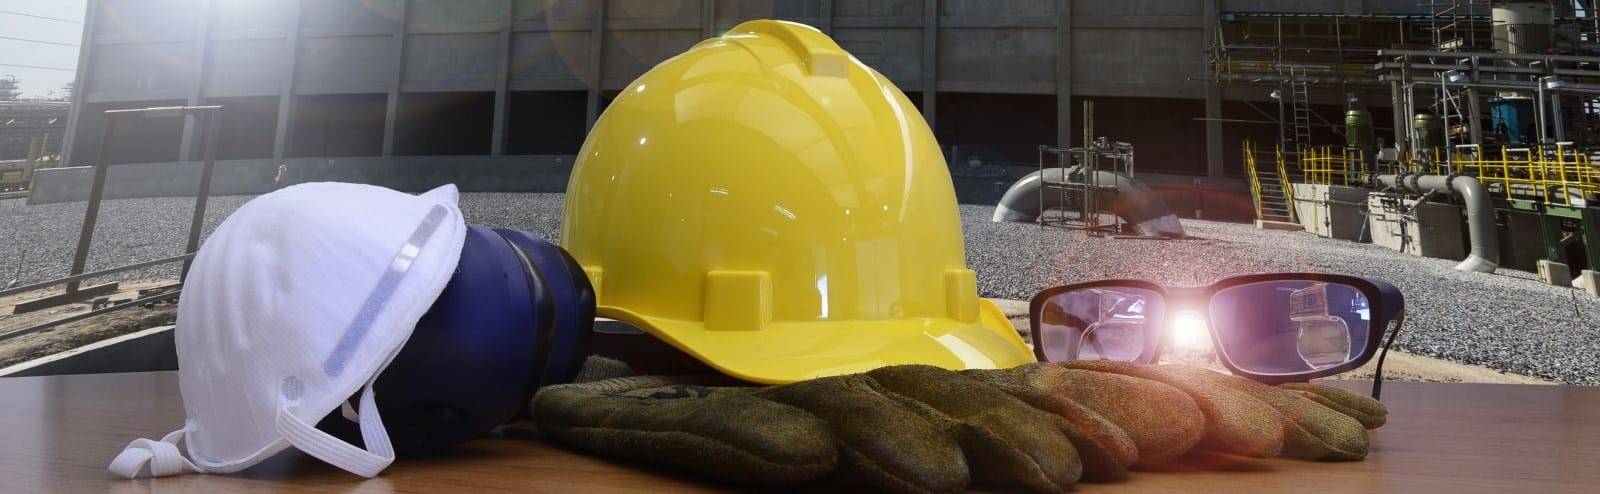 Safety equipment infront at industrial site